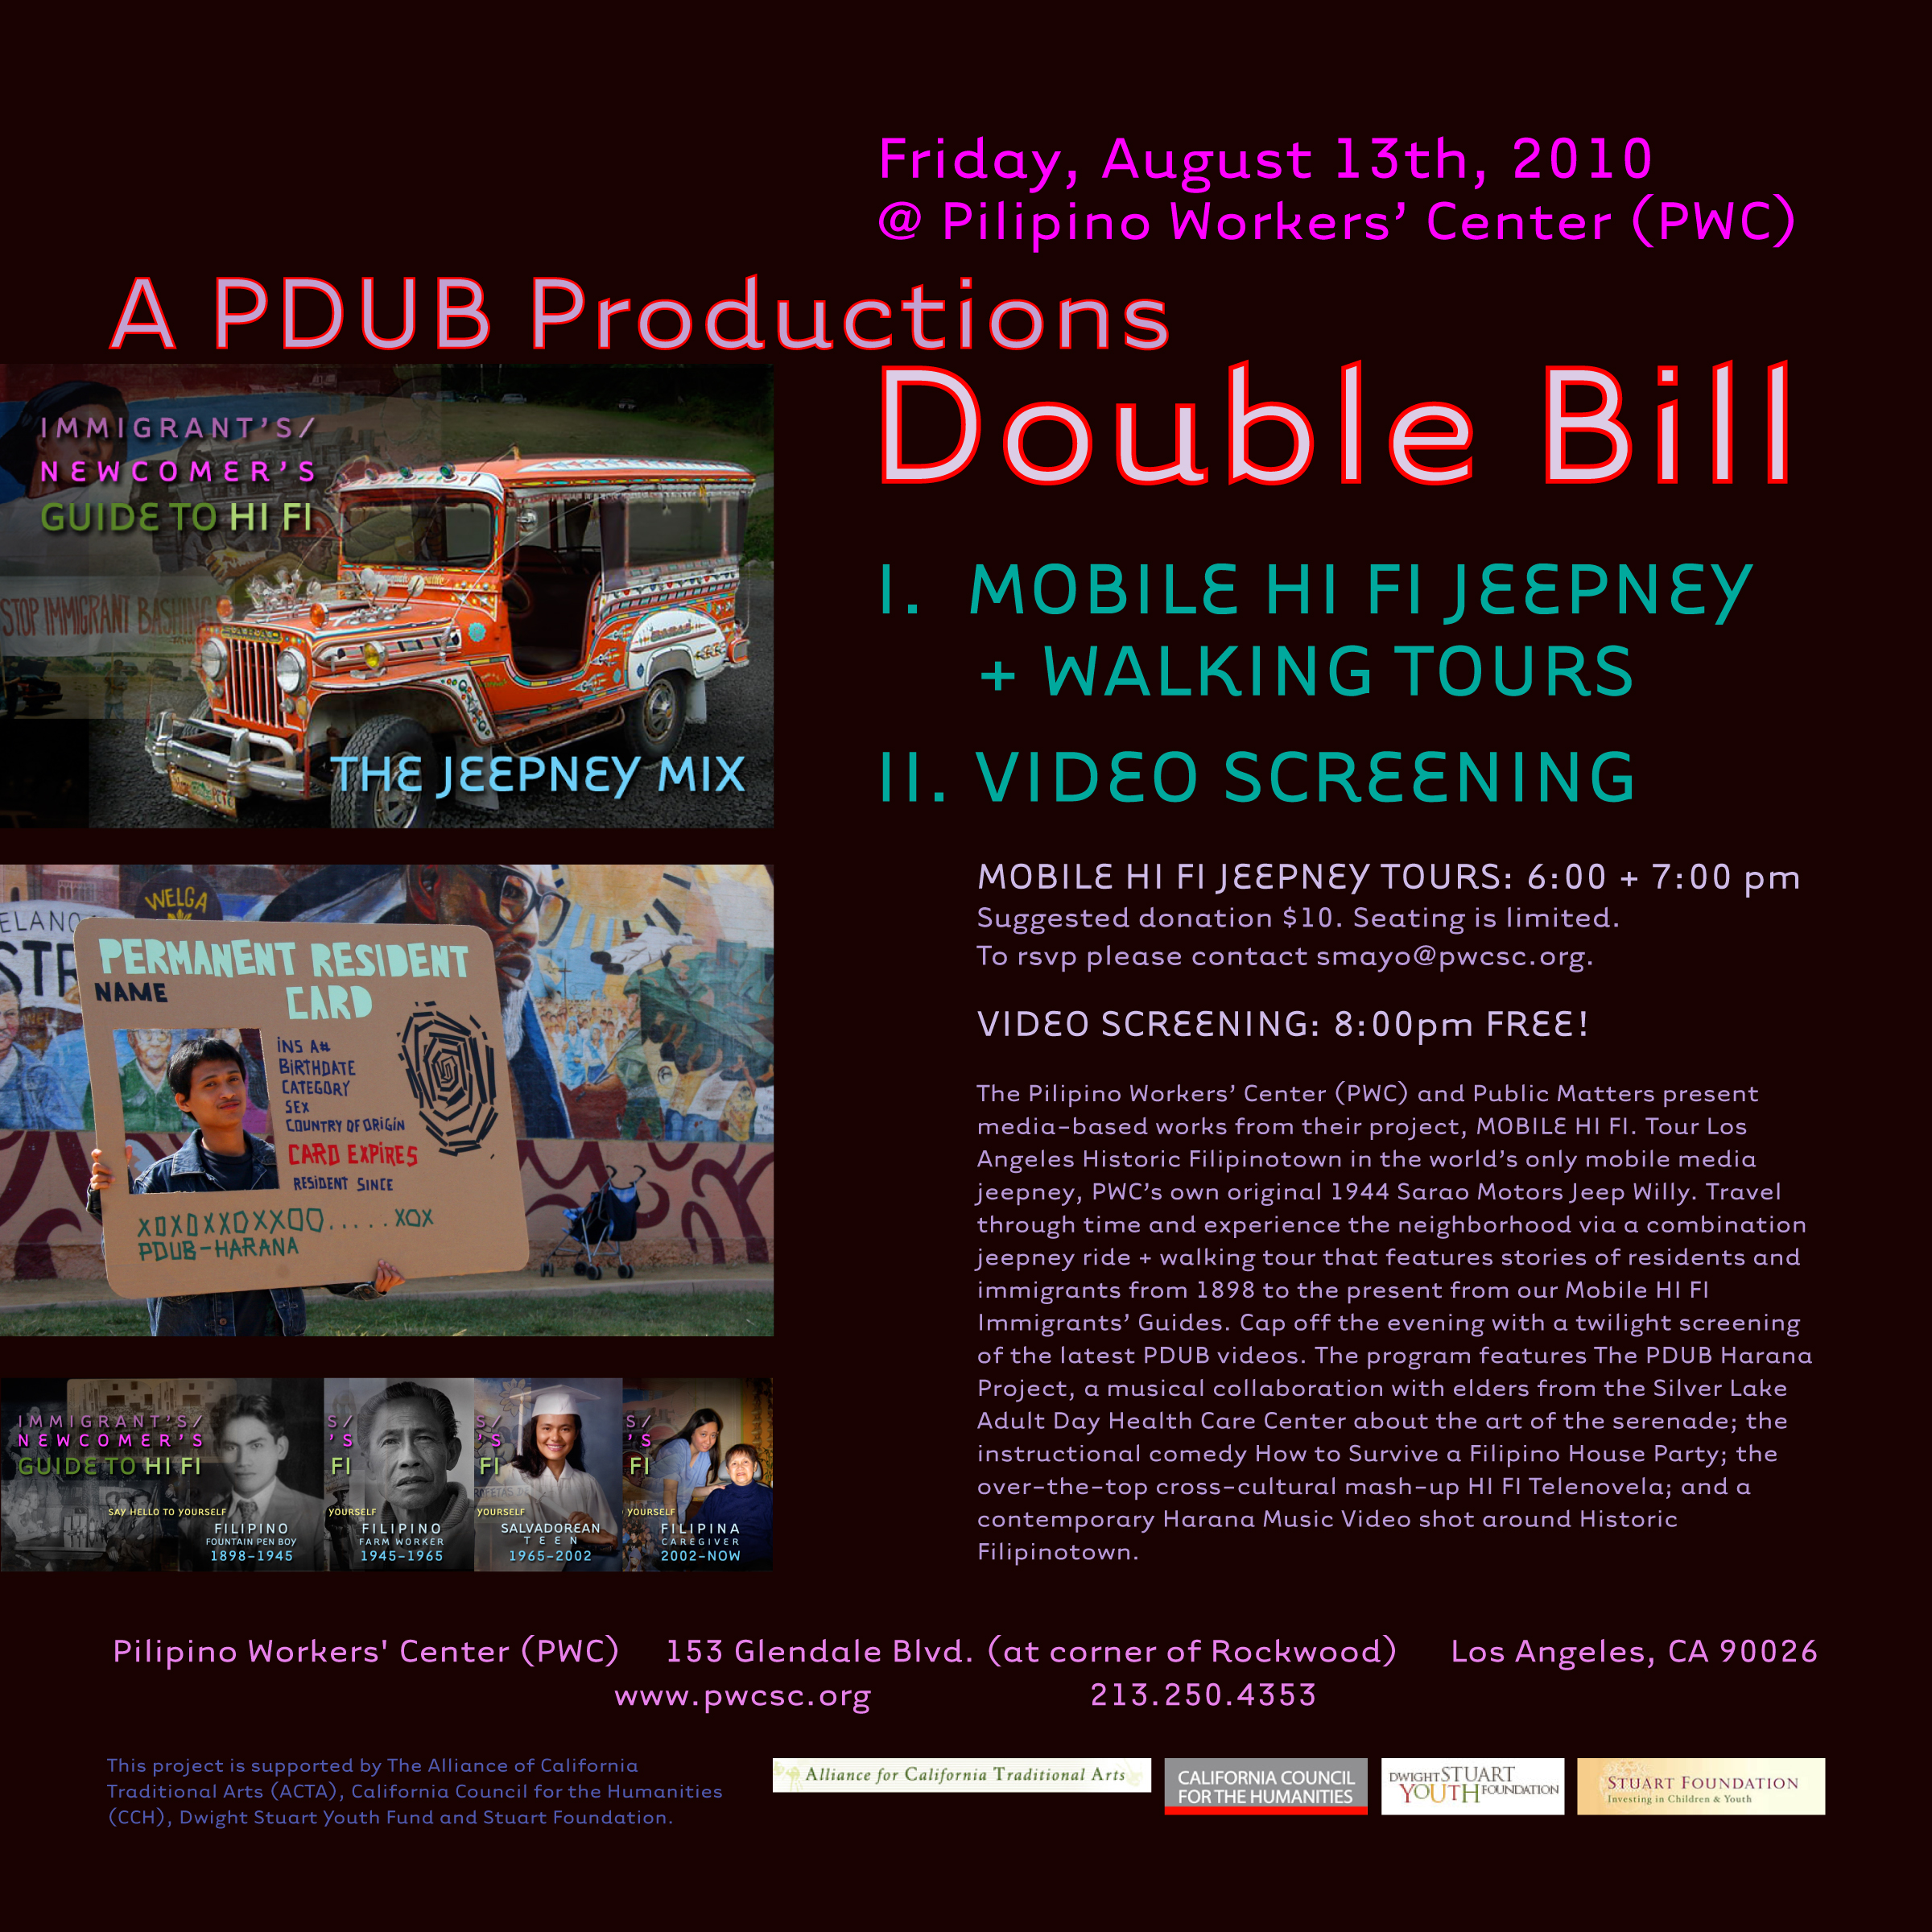 PDUB Productions Double bill flyer